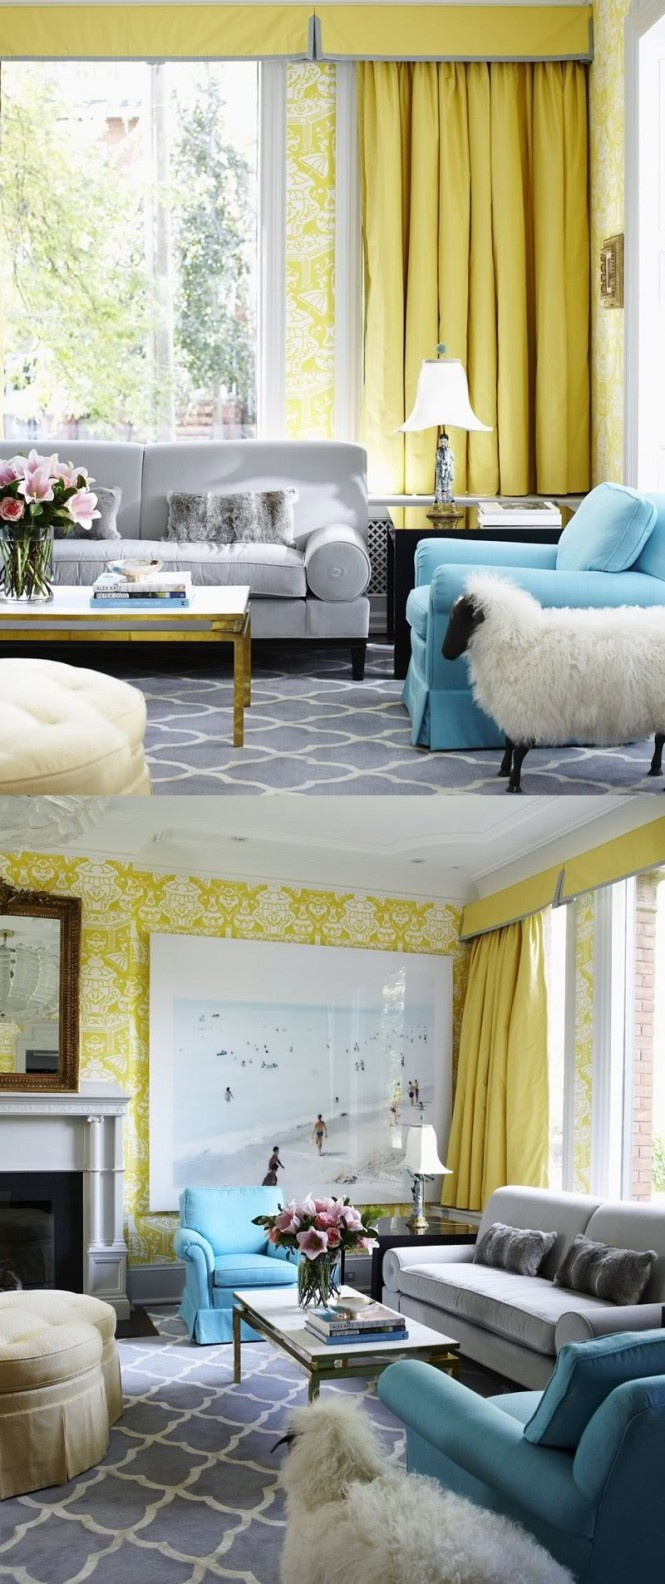 Yellow room interior inspiration 55 rooms for your for Duck egg dining room ideas